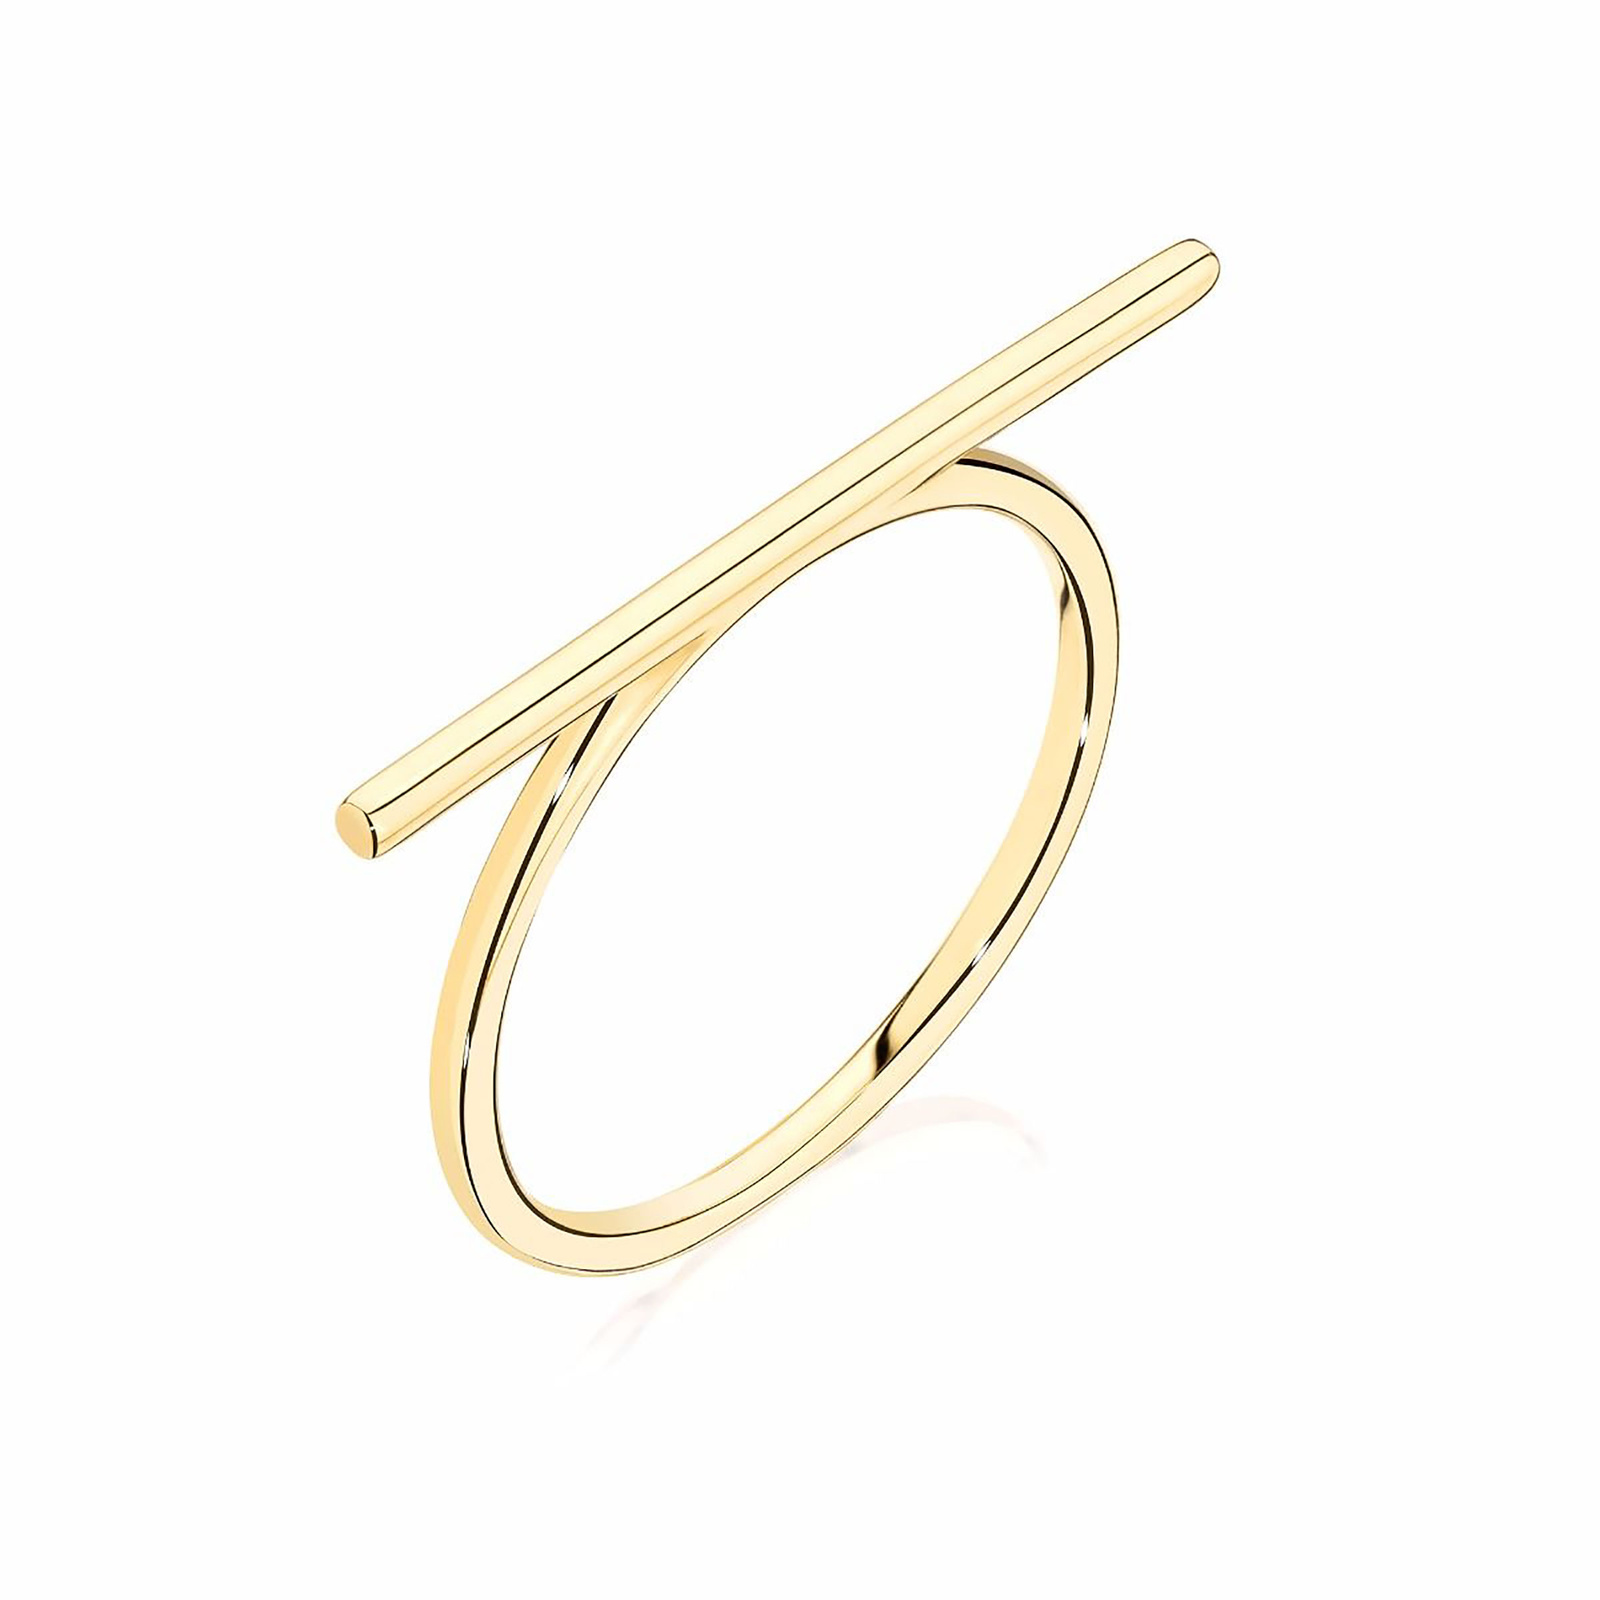 Birks Yellow Gold Bar Ring- Ring Size O